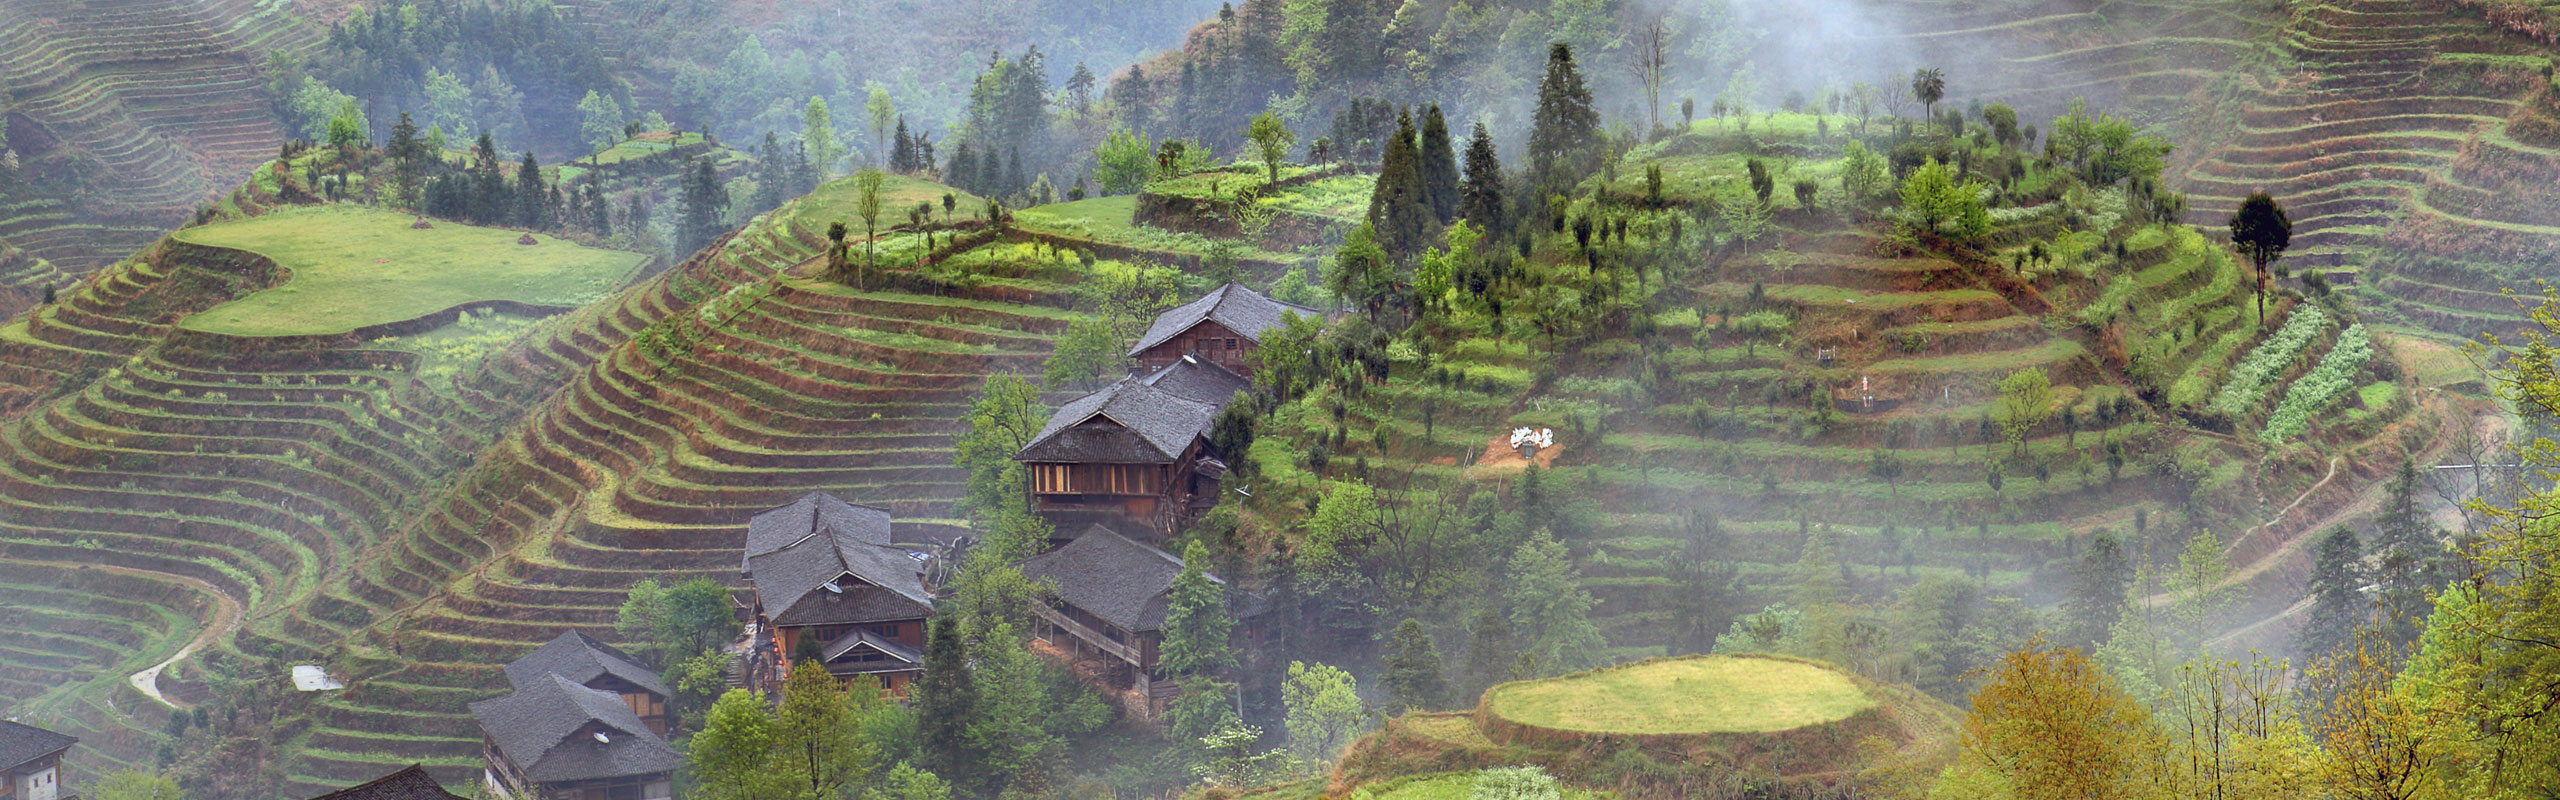 One-Day Tour to Longji Rice Terraces & Mountain Village (Small Group)